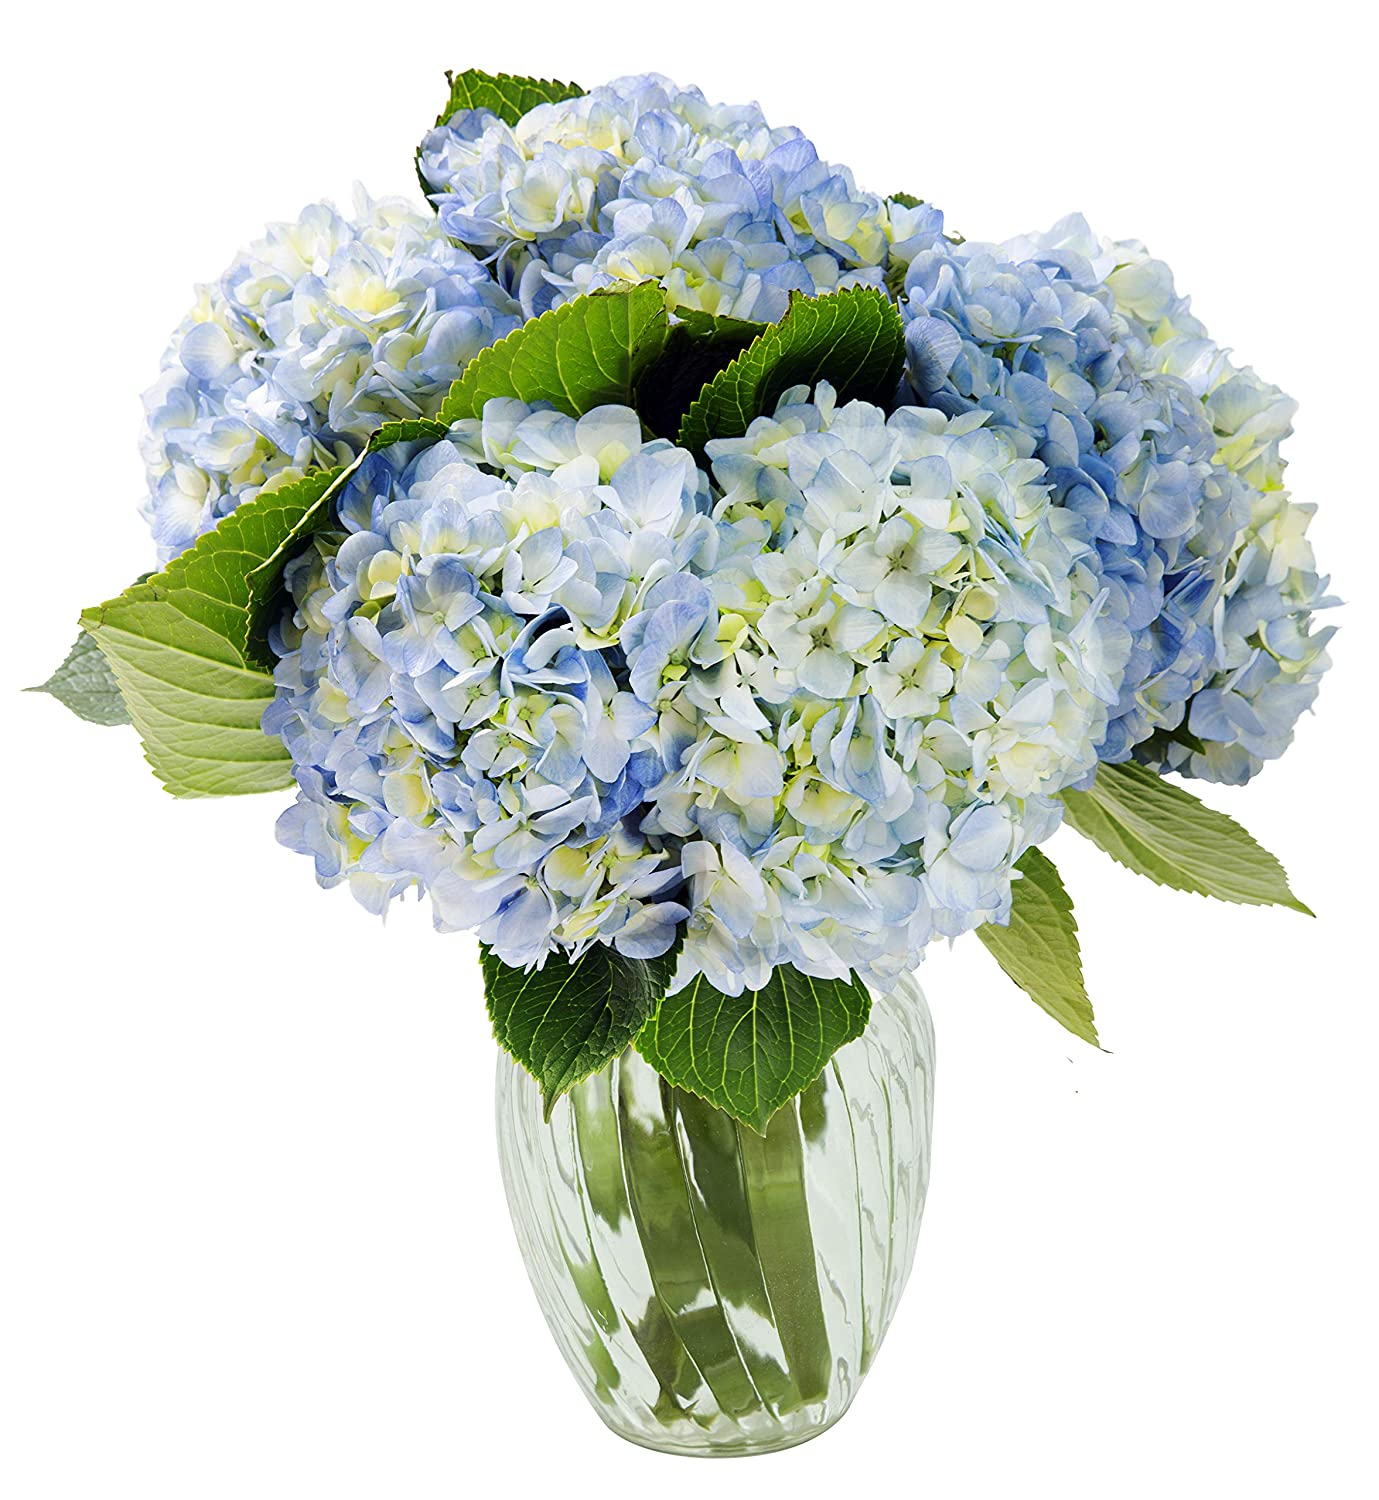 42766acfdb40 KaBloom Summer Beauty Bouquet of 6 Blue Hydrangeas with Vase: Amazon.com:  Grocery & Gourmet Food